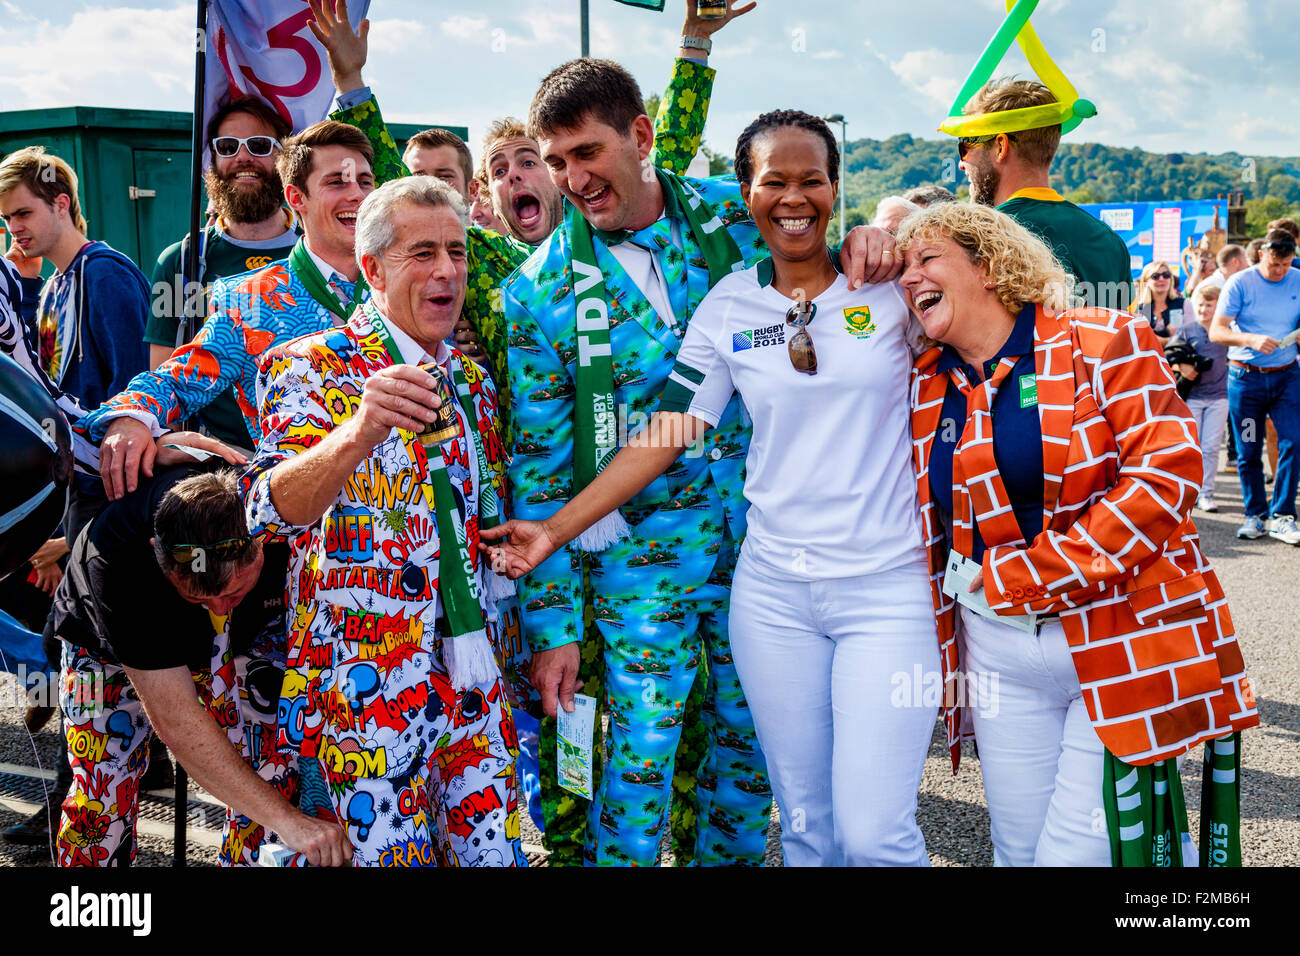 South African Rugby Fans Arrive To Watch Their Team Play Japan In Their Opening Match of The 2015 Rugby World Cup, - Stock Image